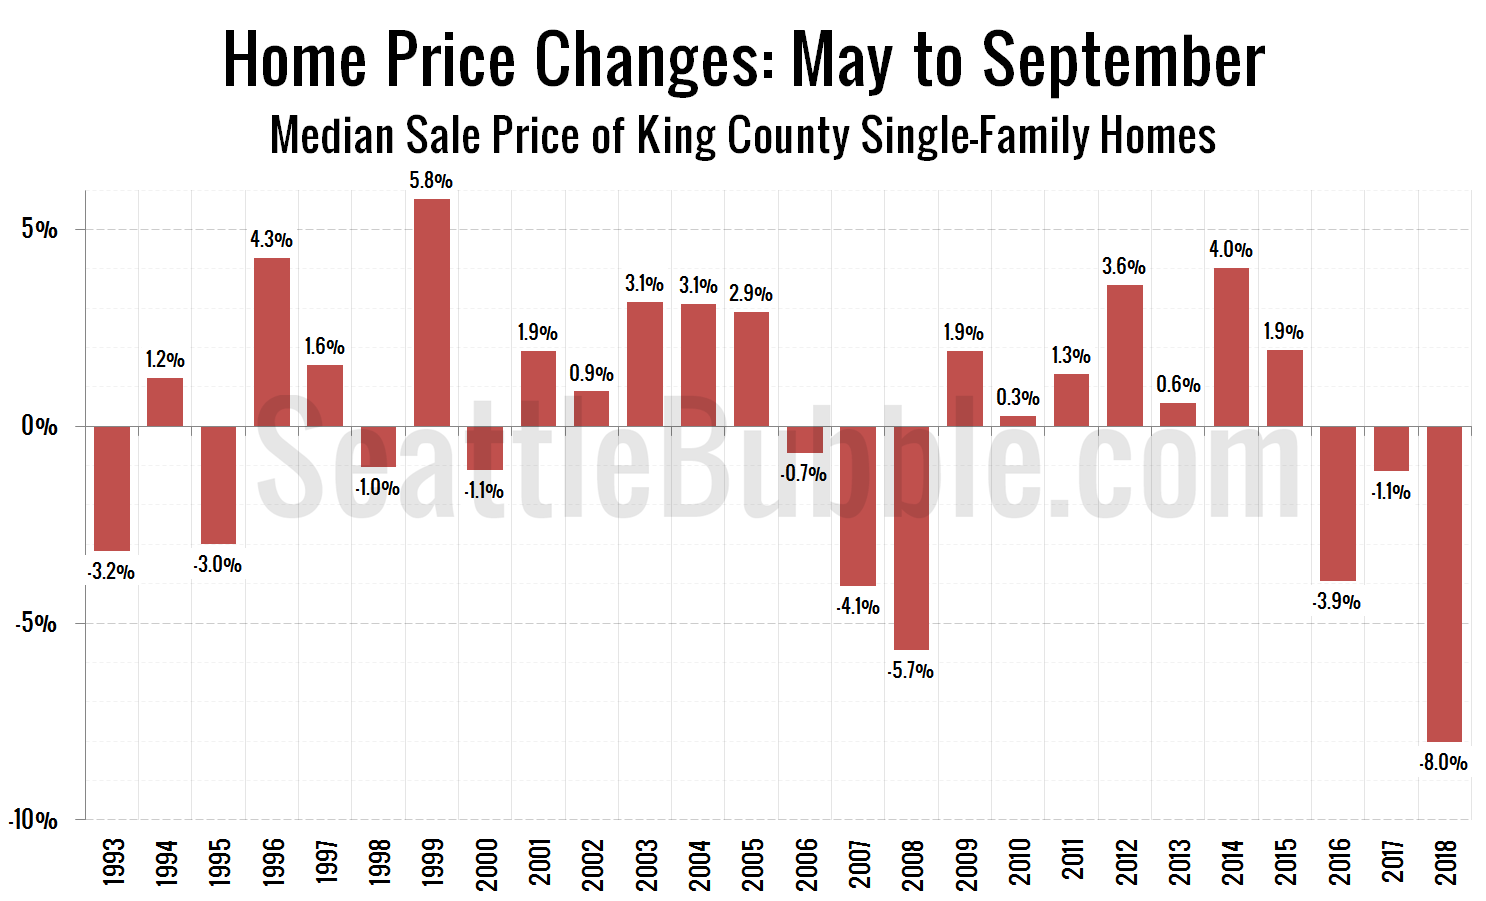 Home Price Changes: May to September - Median Sale Price of King County Single-Family Homes